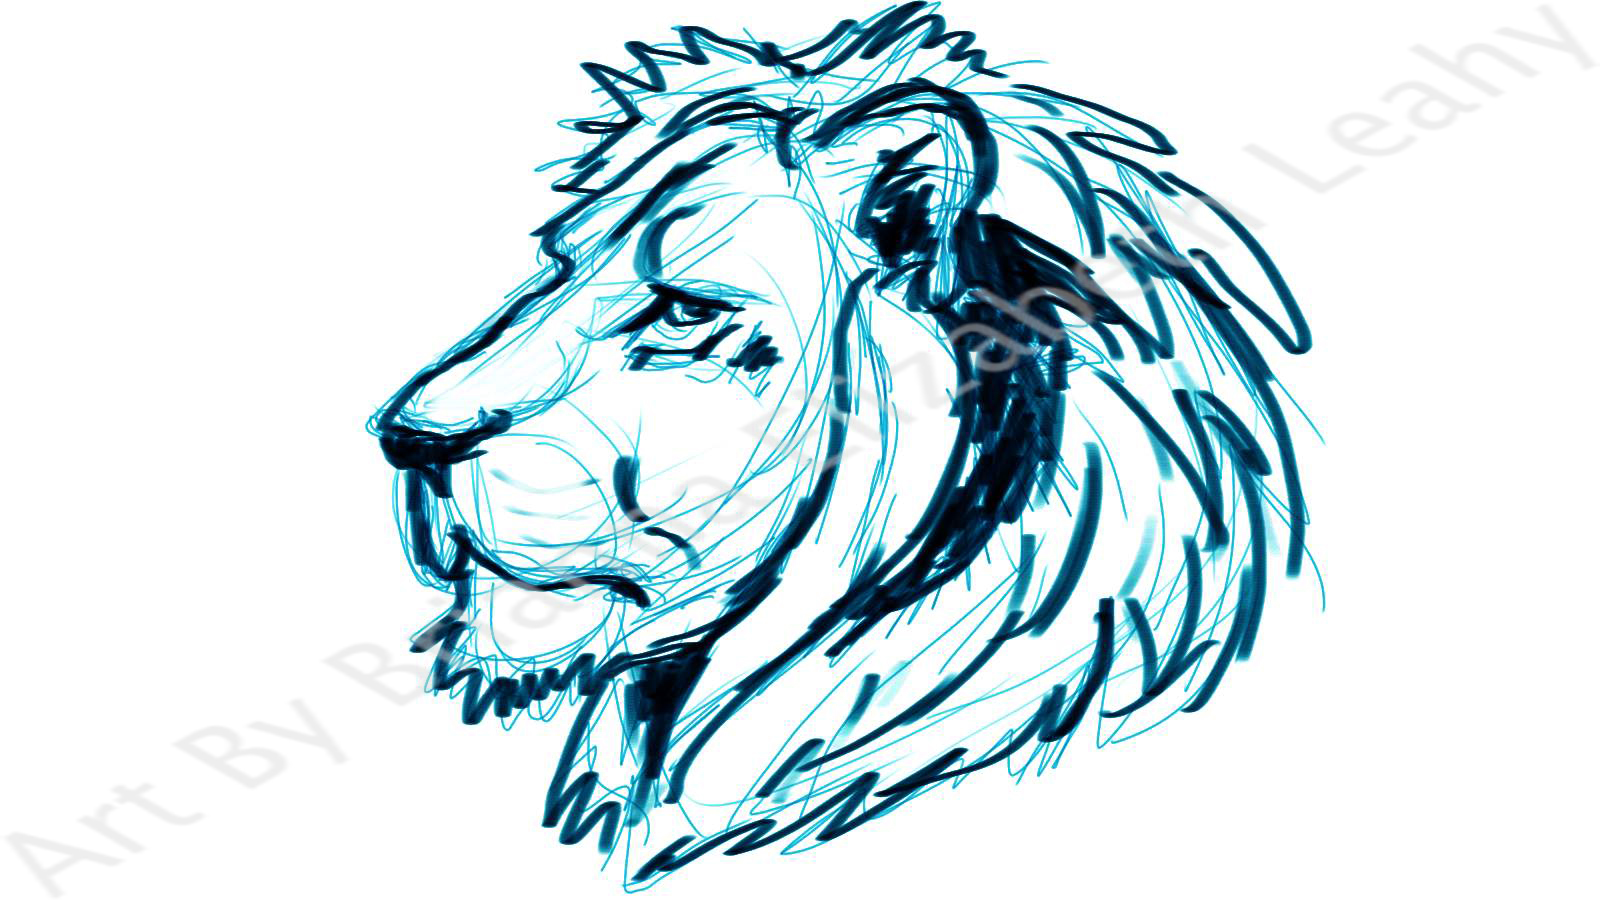 Lion Side View Sketch Tattoo concept: lion's head